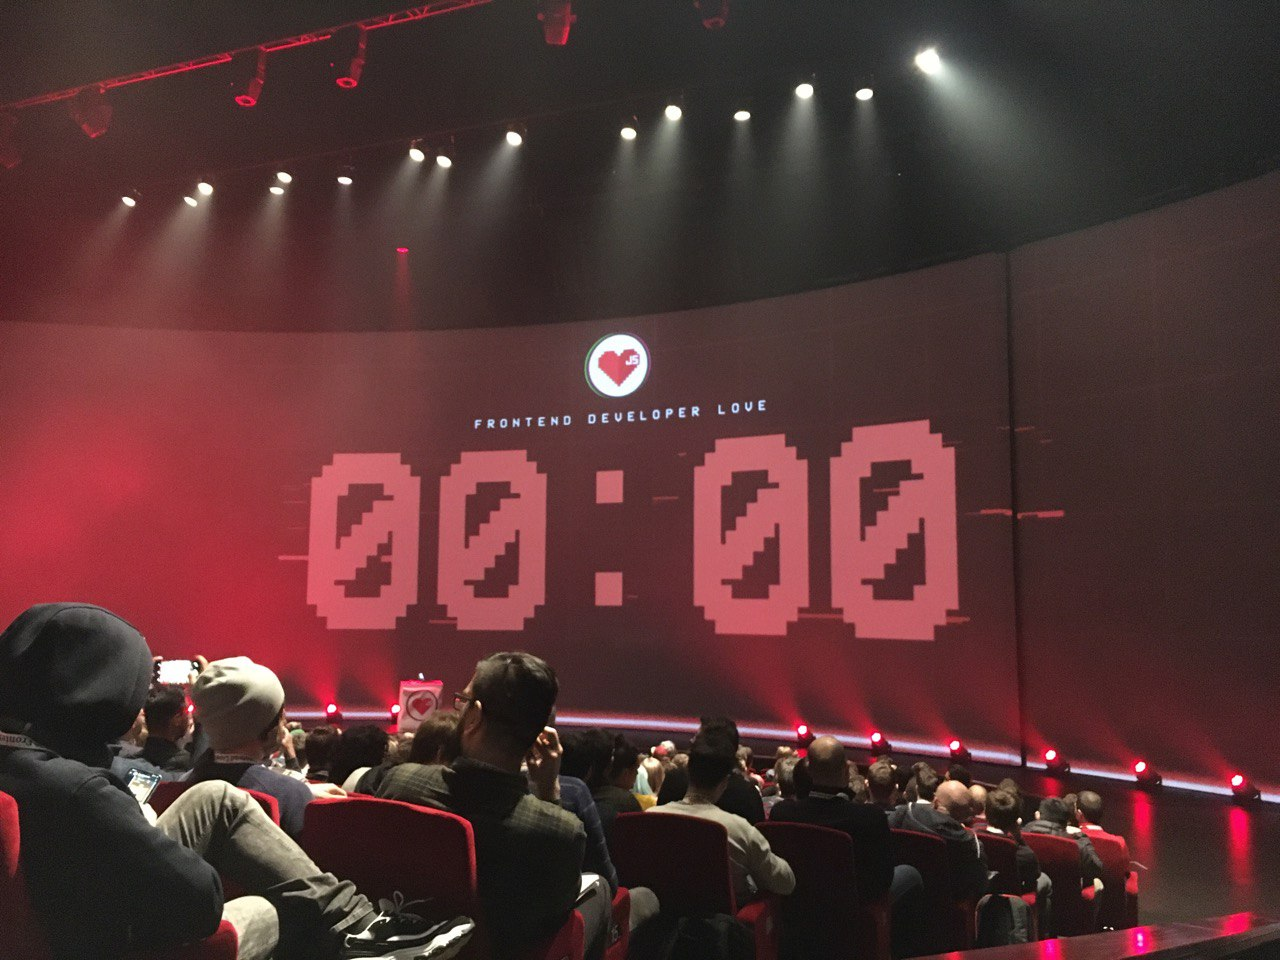 Countdown clock on screen before the Frontend Developer Love conference started